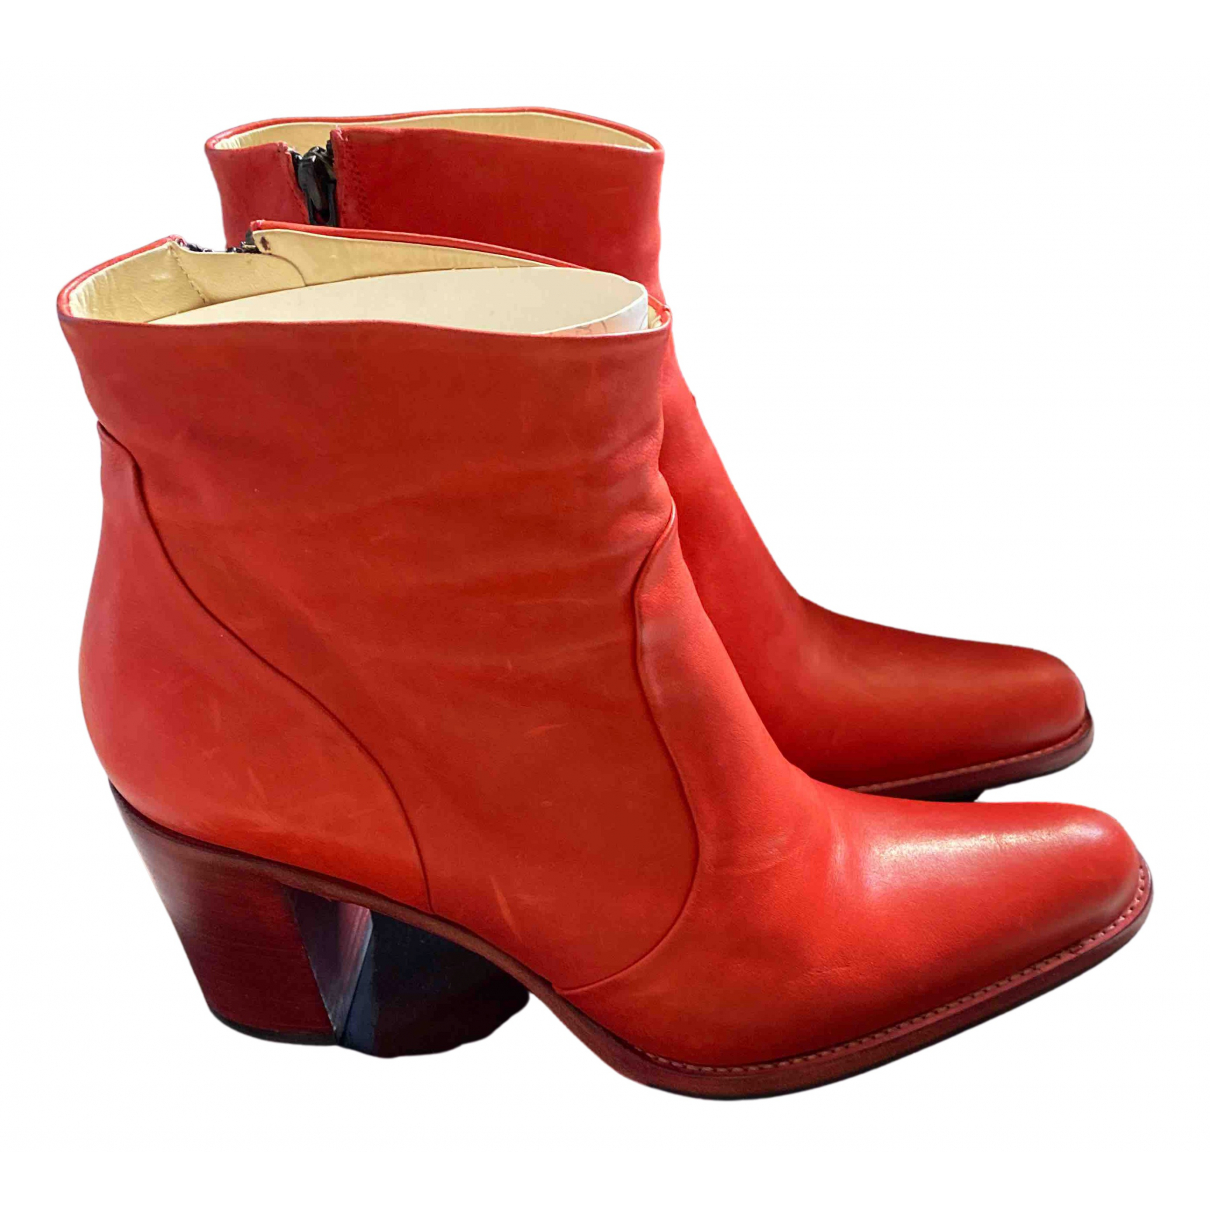 Free Lance N Red Leather Ankle boots for Women